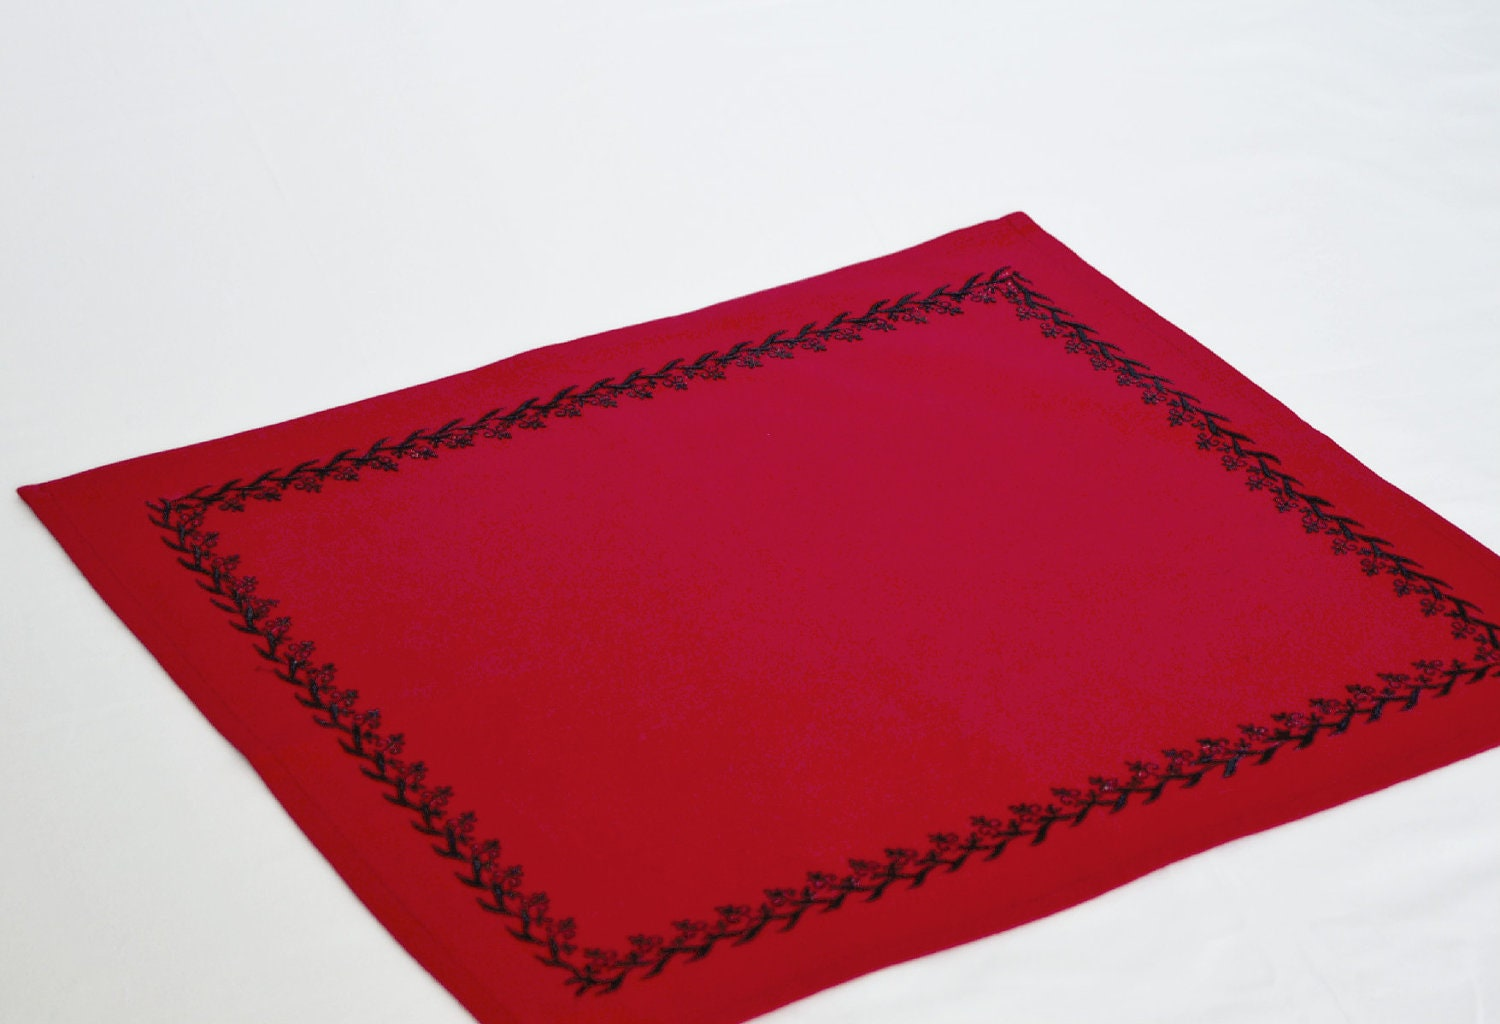 Handmade table mats design -  Zoom